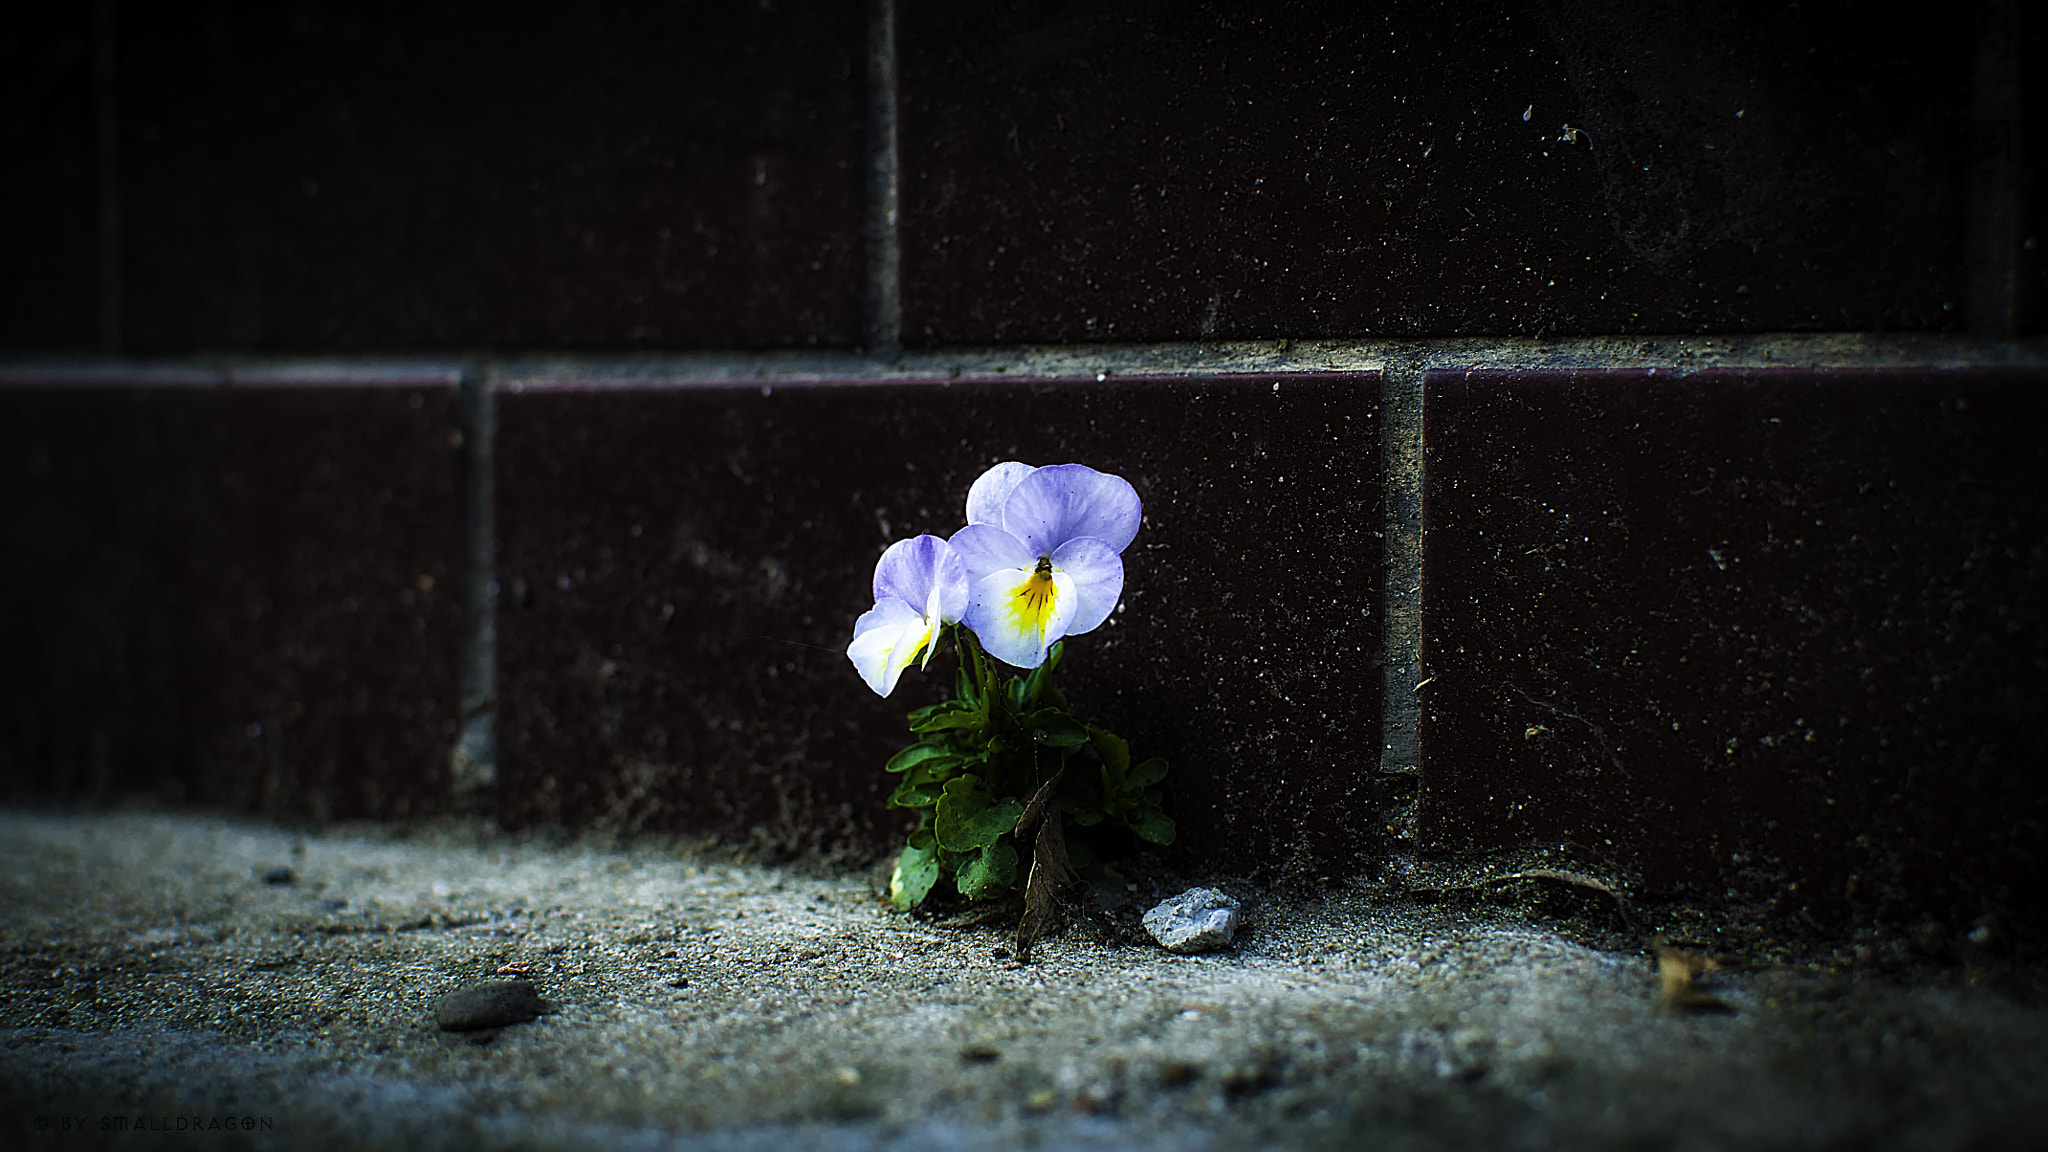 Photograph Flowers on the Wall 03 by Sven Reitis on 500px